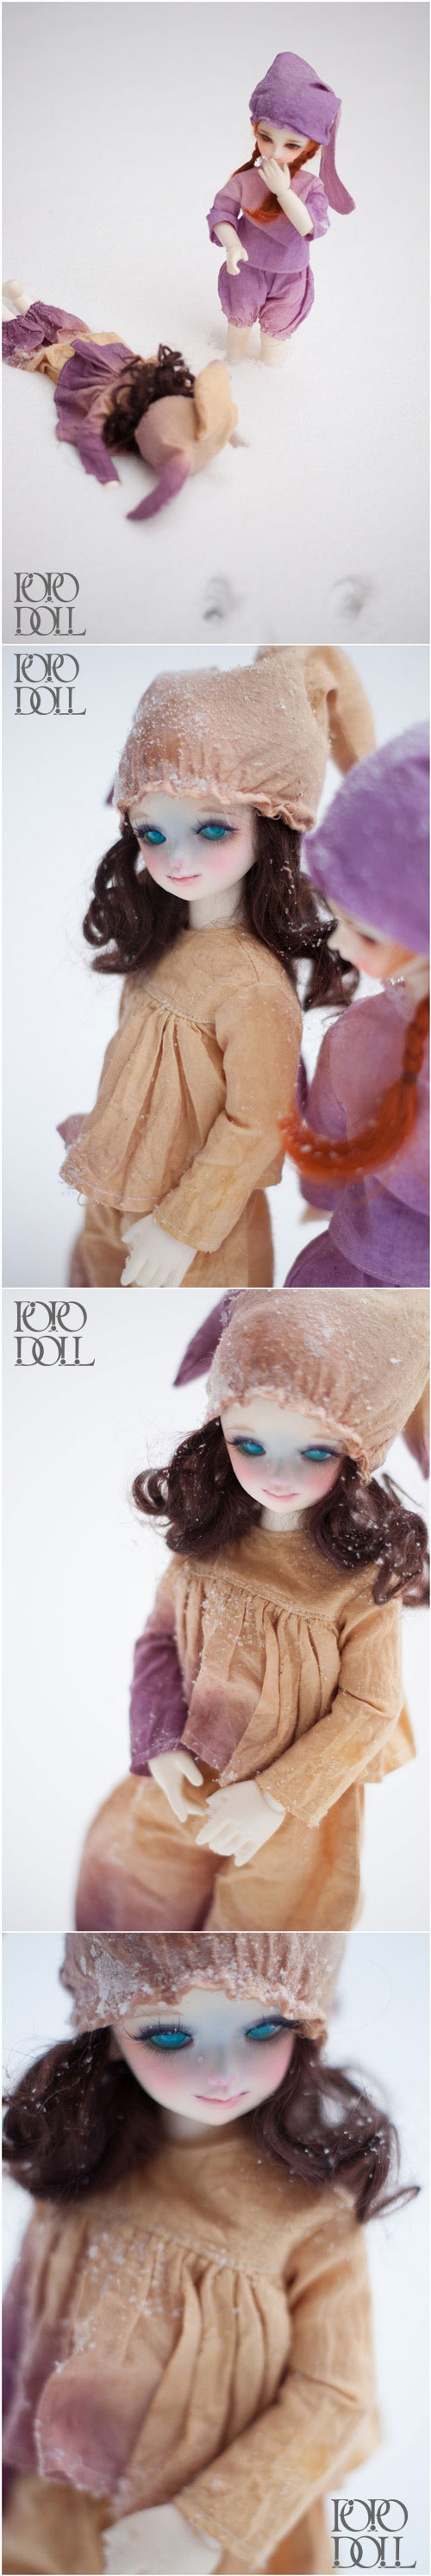 BJD QiQi Boy 30cm Boll-jointed doll